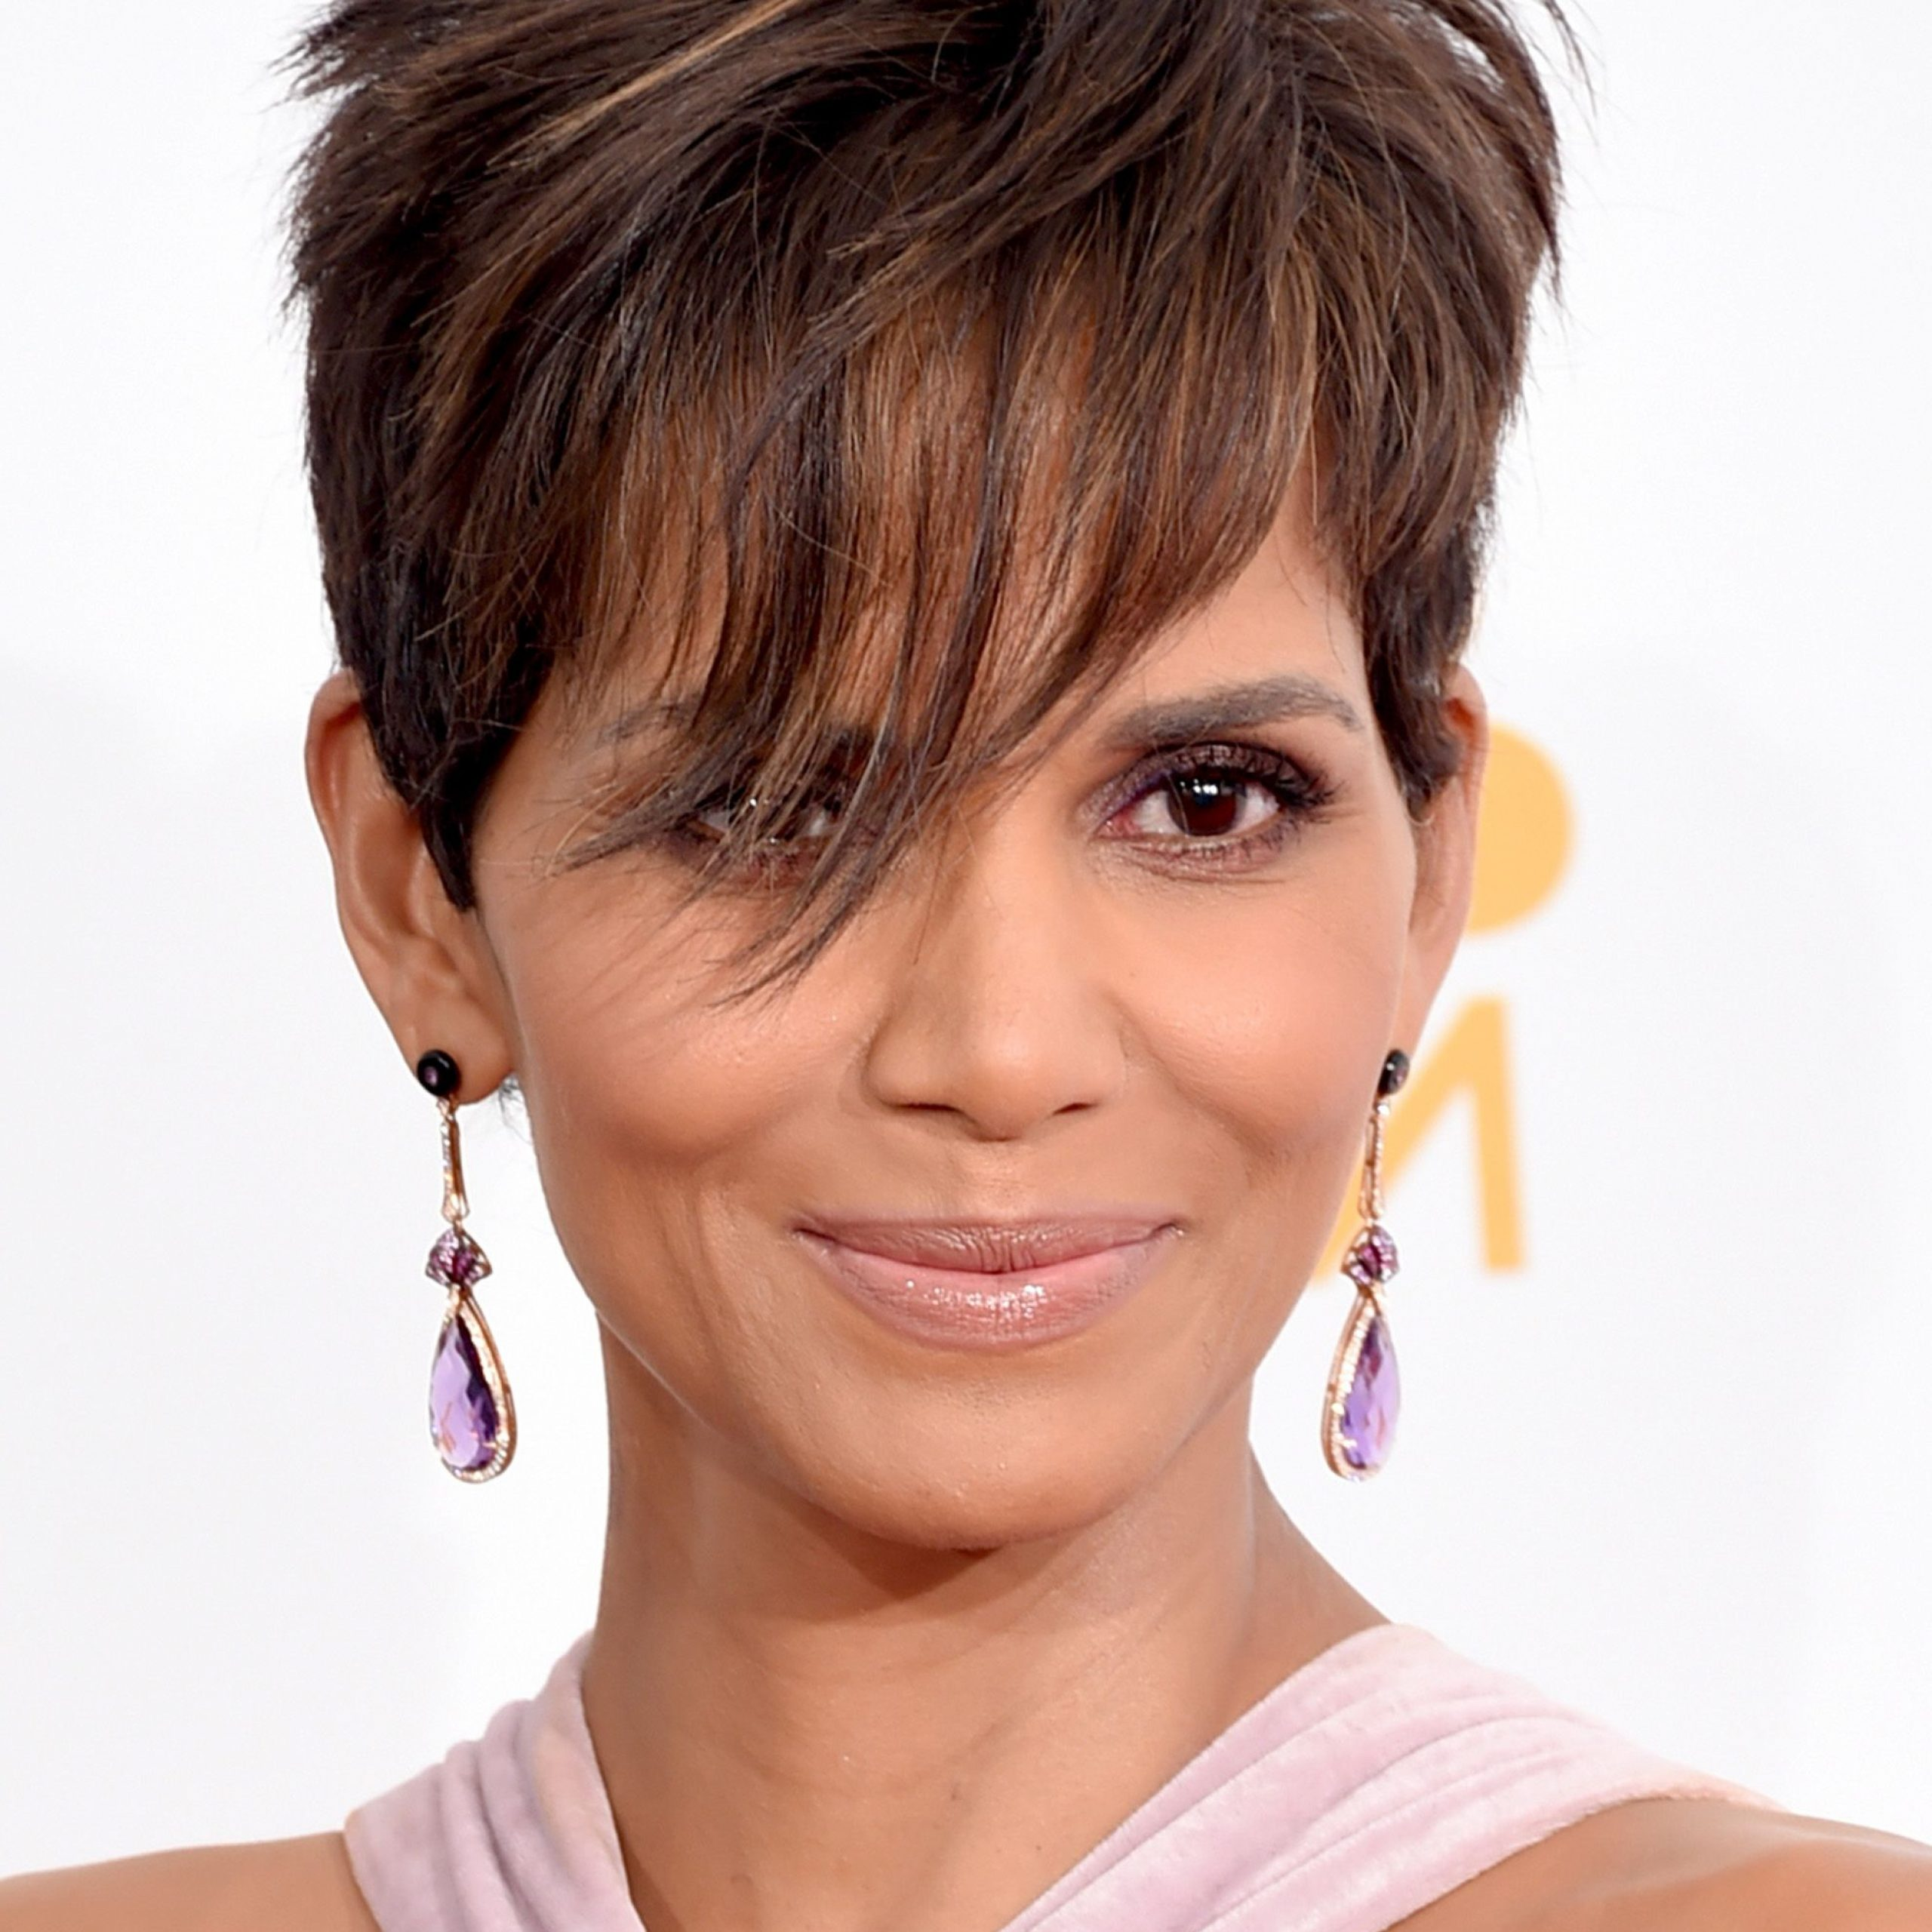 40 Best Short Pixie Cut Hairstyles 2019 – Cute Pixie Regarding Messy Curly Blonde Pixie Bob Haircuts (View 7 of 20)